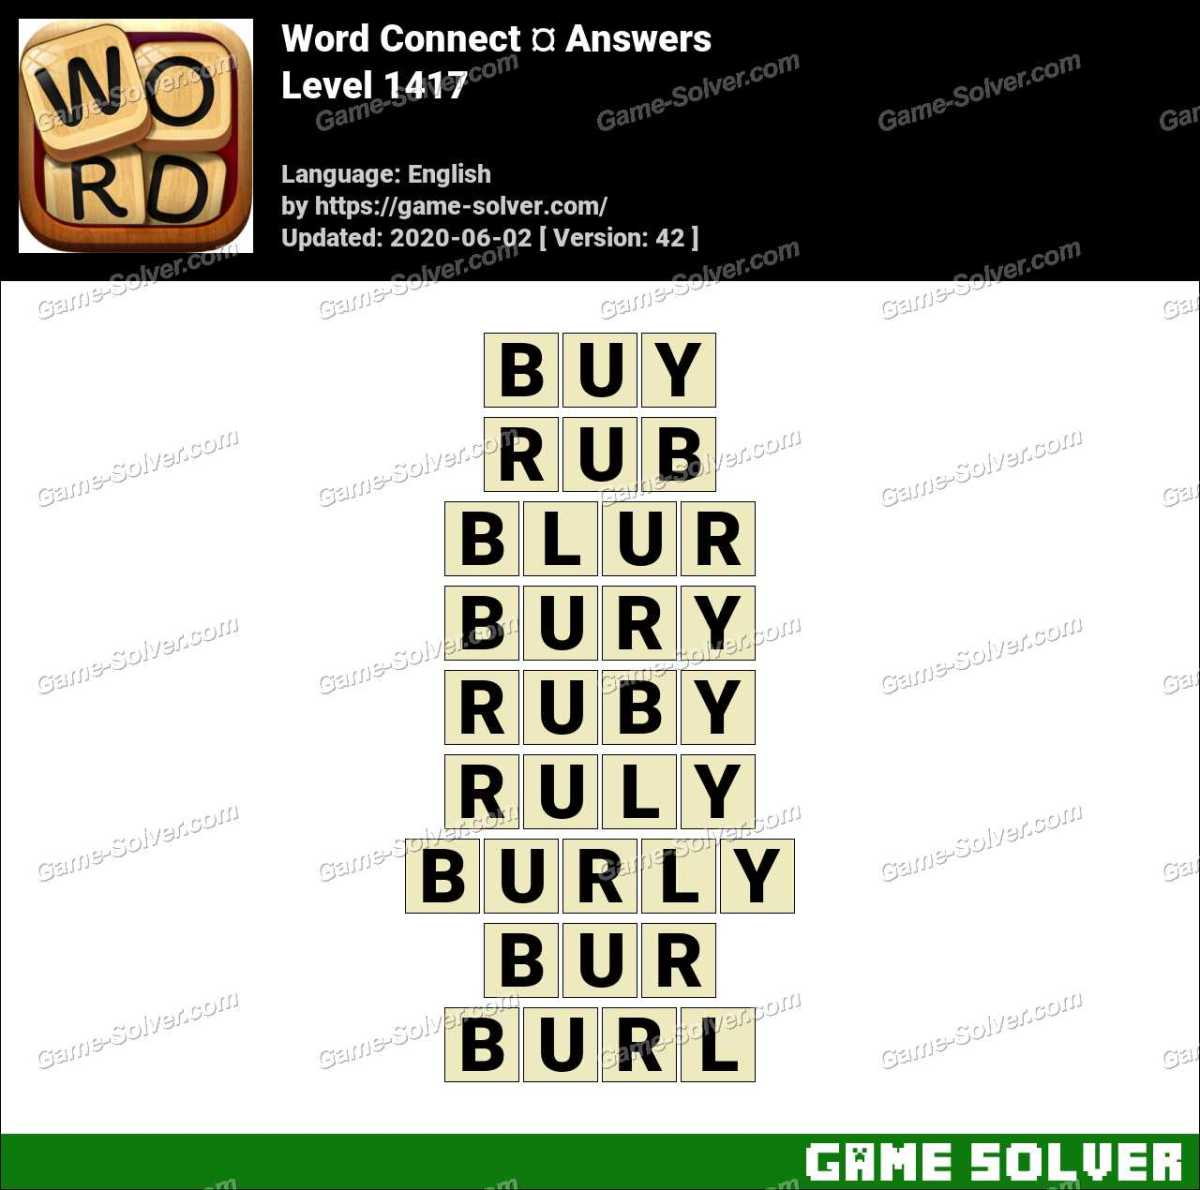 Word Connect Level 1417 Answers